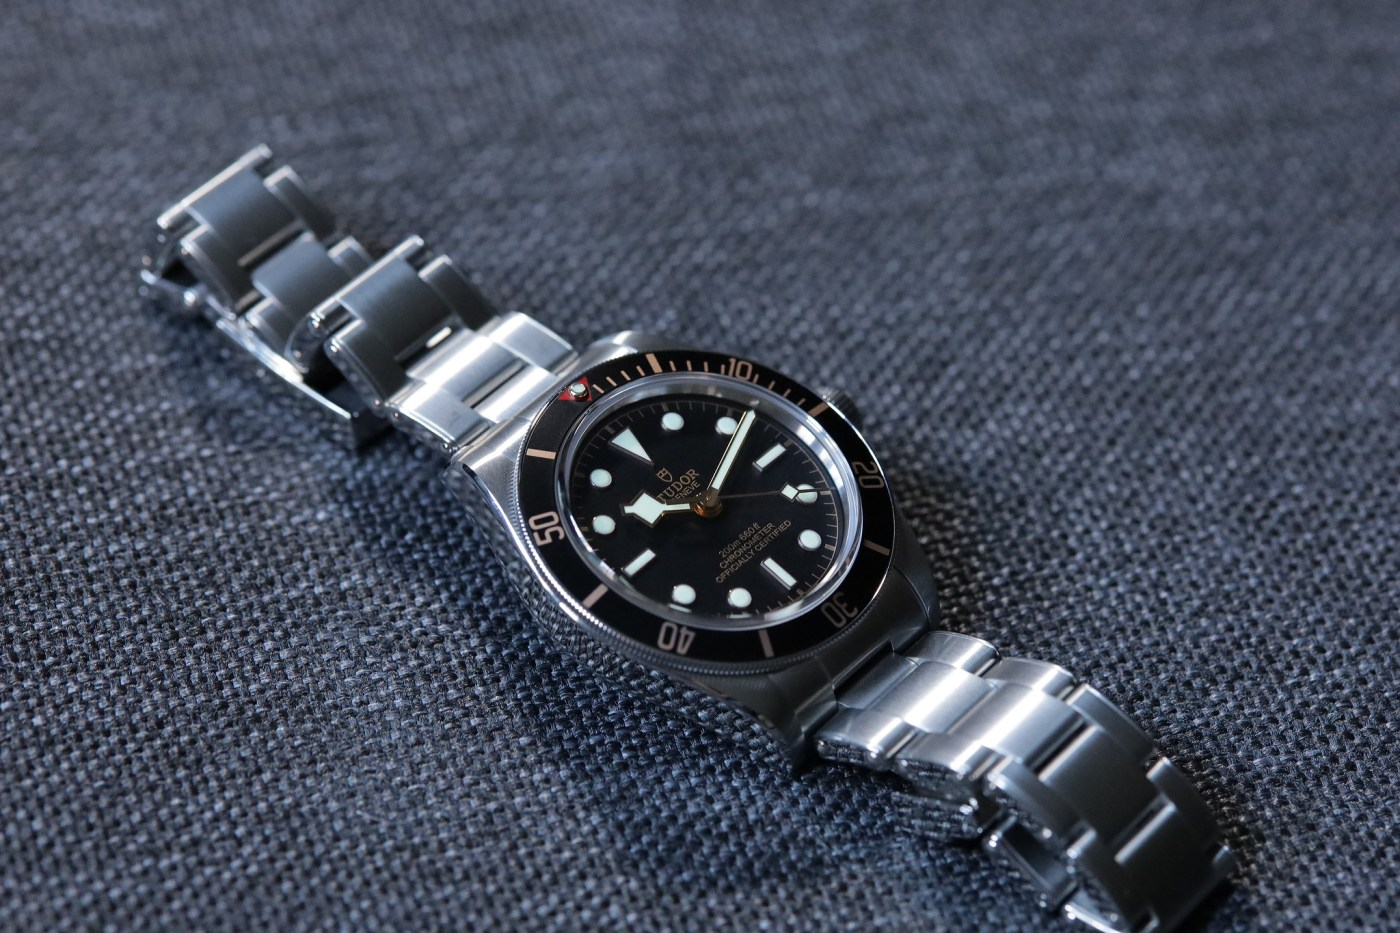 Black Bay 58 polished case and bracelet flanks